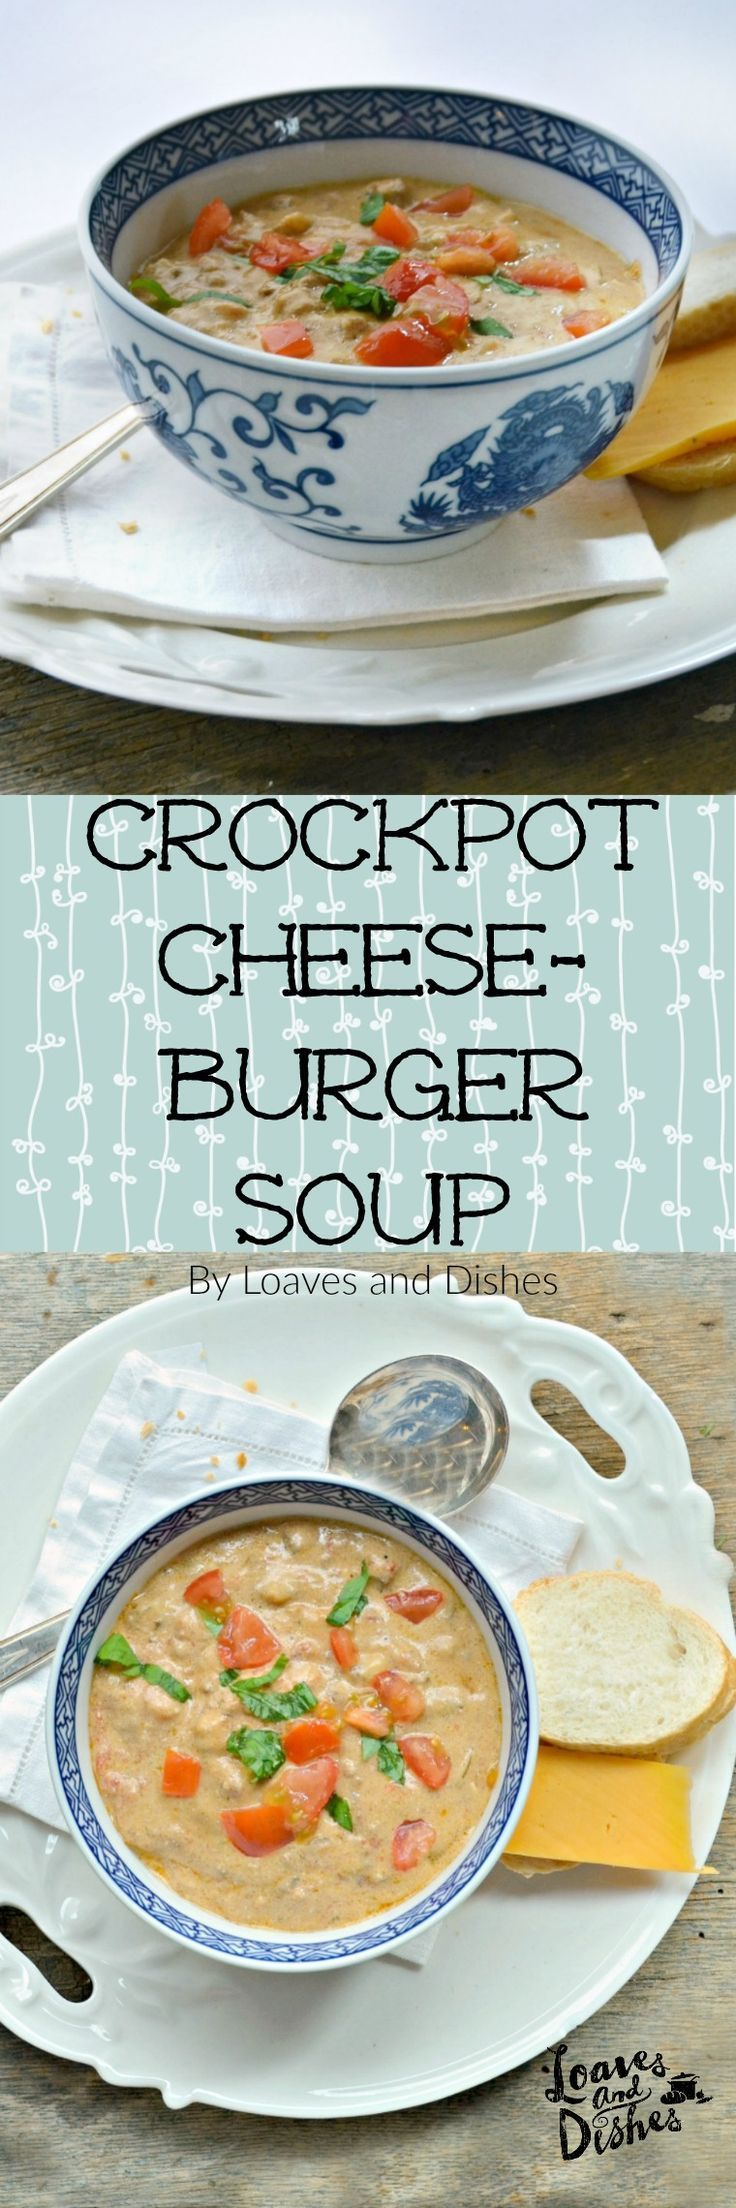 This recipe is for a slow cooker soup that is so thick it is like a chowder or stew. Rich with hamburger and cheese and slow cooked all day! PERFECT!